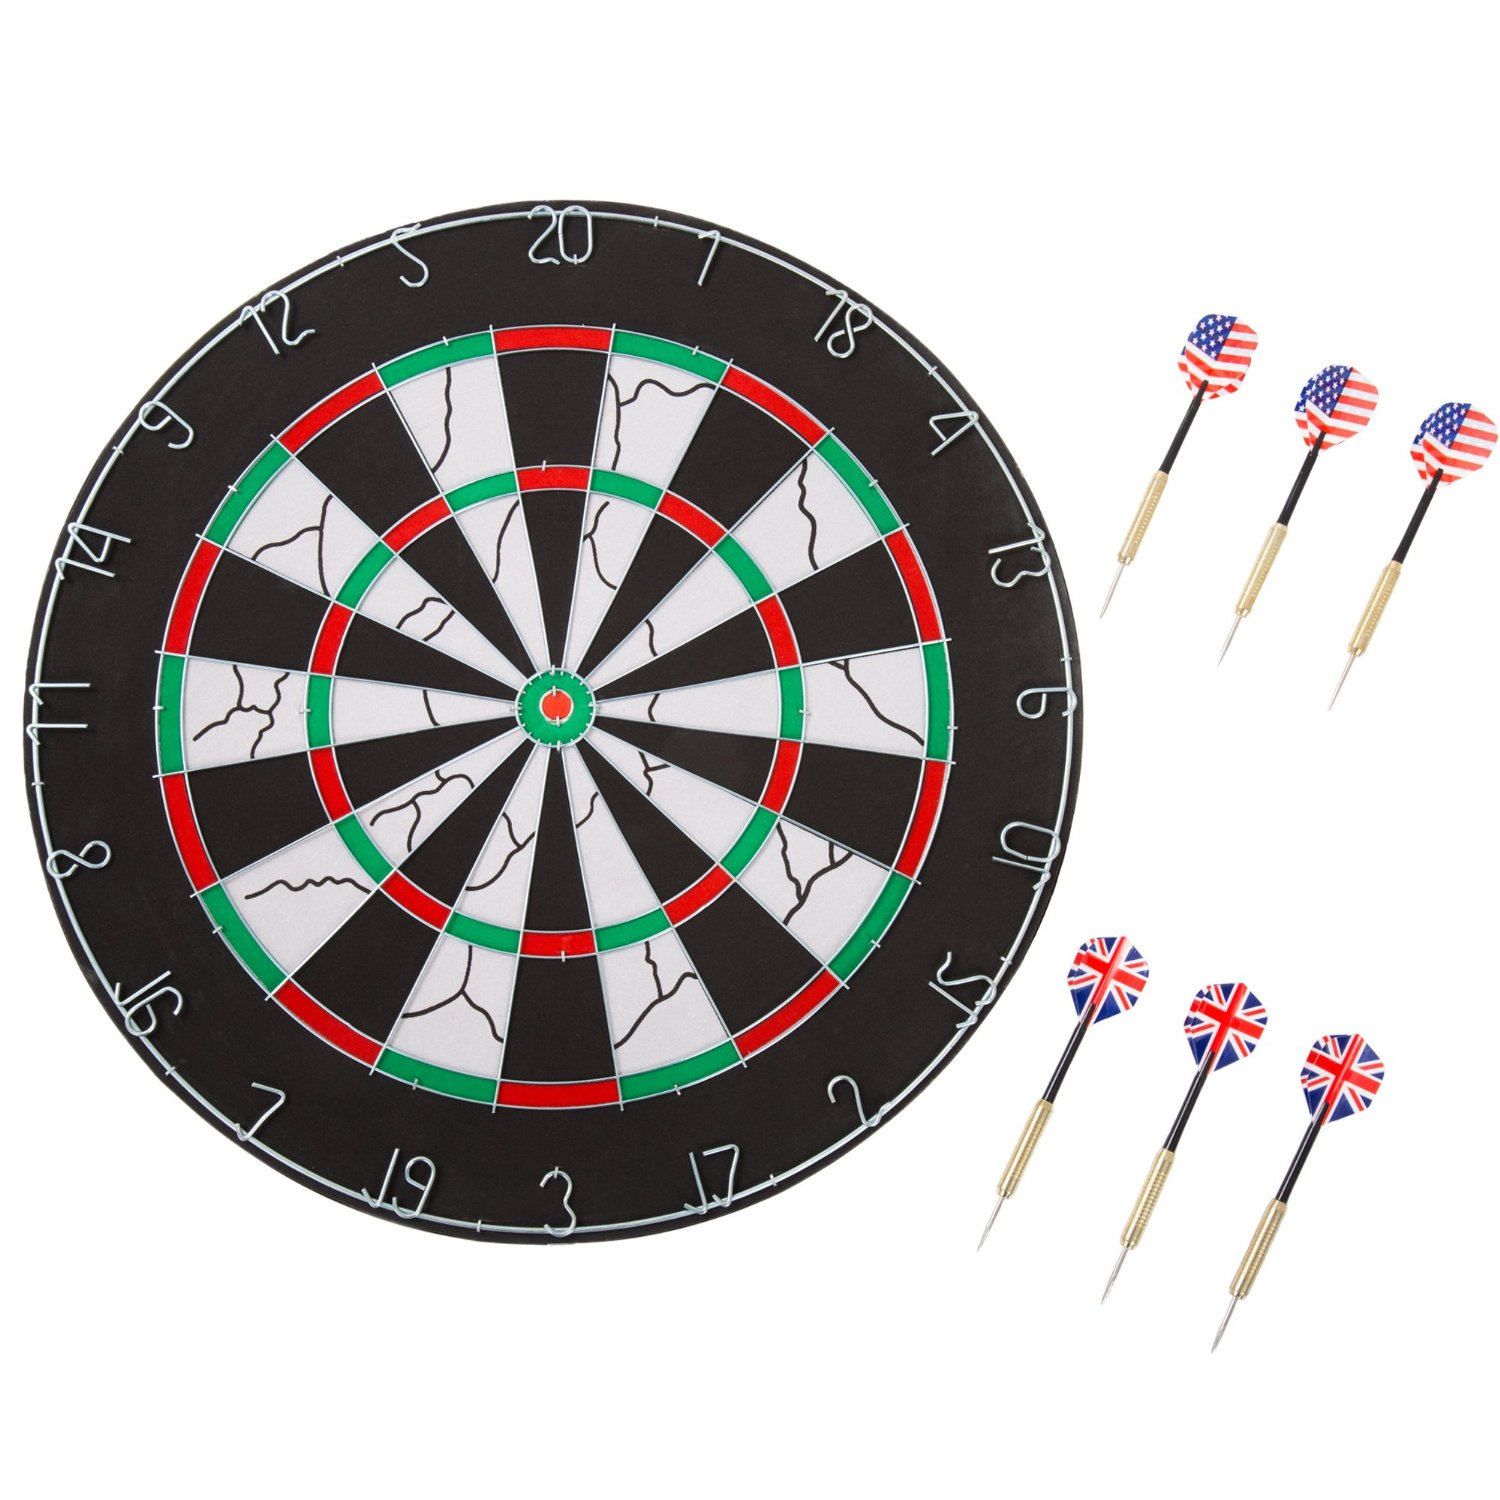 Trademark Games Double-Sided Flocked Dart Board – Regulation Size Tournament Set 6-17 Gram Steel Tip Darts Numbered Spider Indoor Play